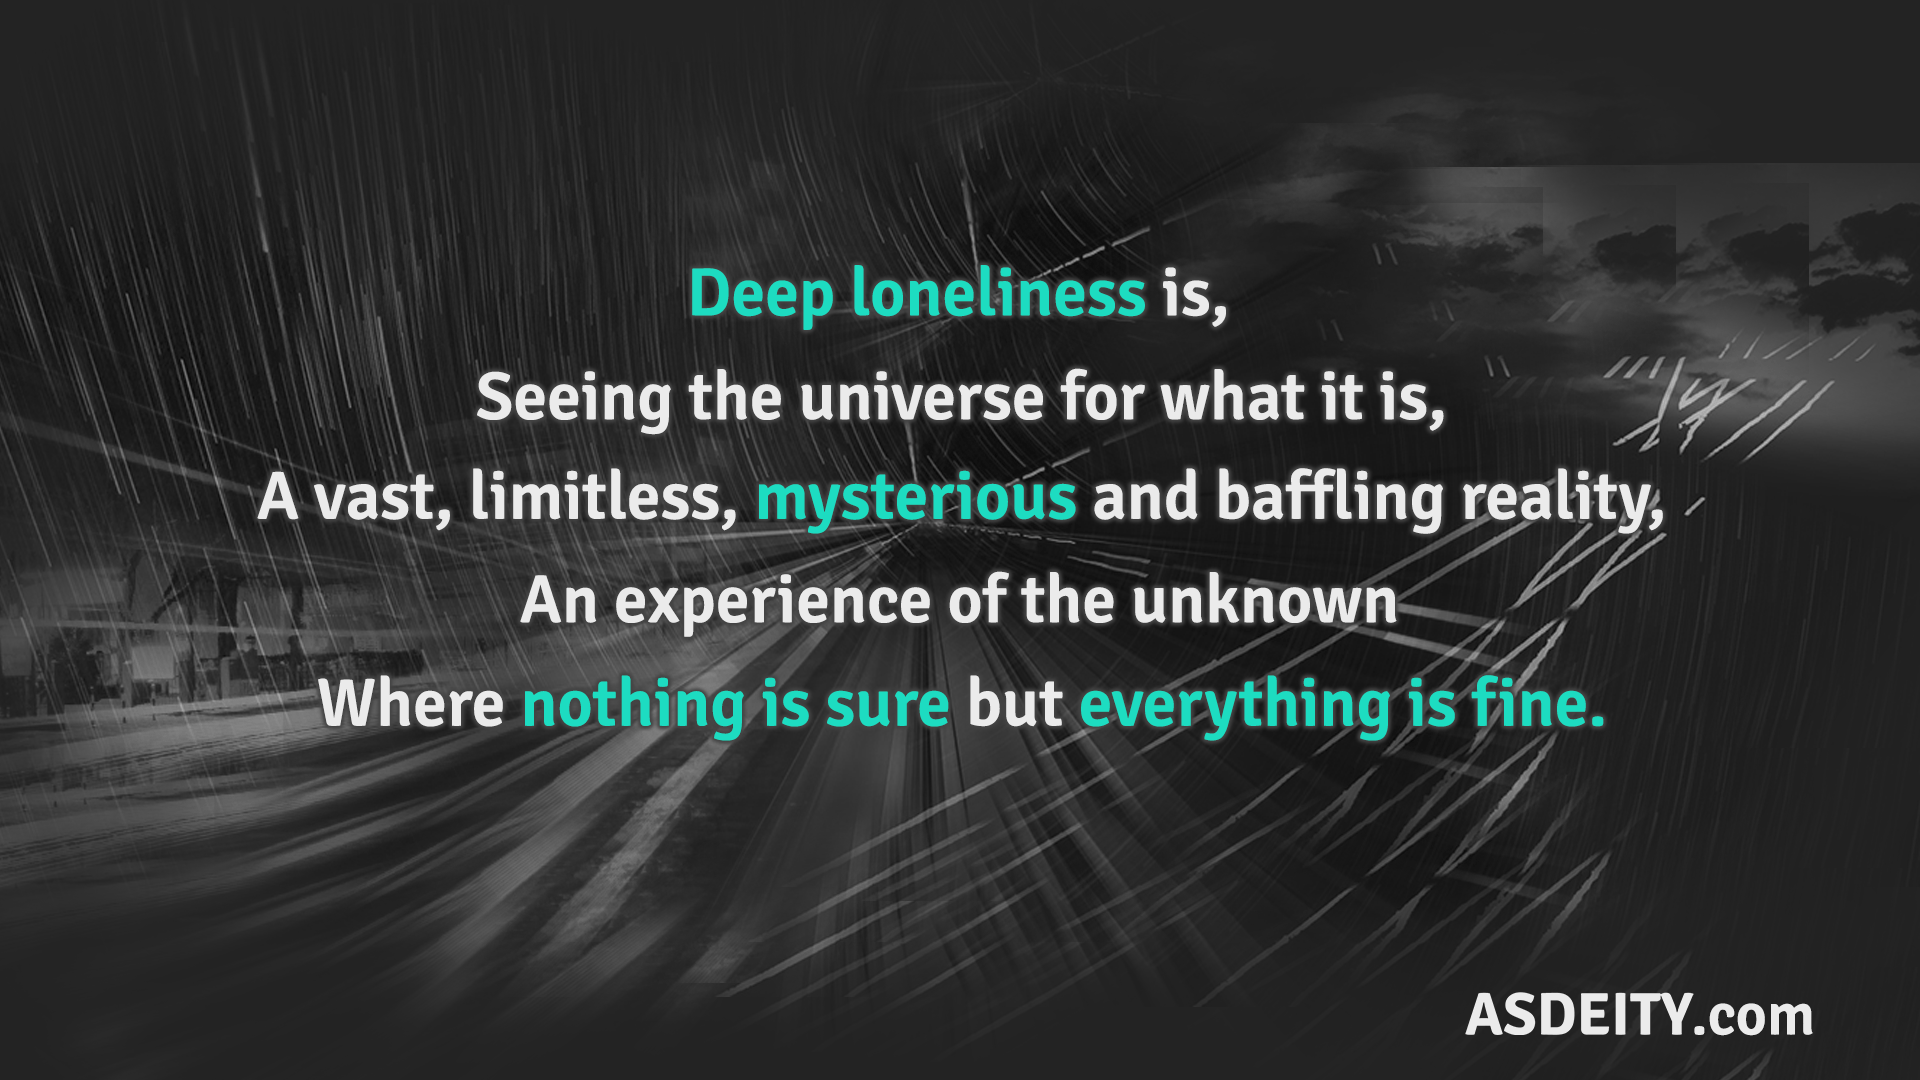 """Deep loneliness is, seeing the universe for what it is, a vast, limitless, mysterious and baffling reality…"" – Anonymous [1920×1080][OC]"